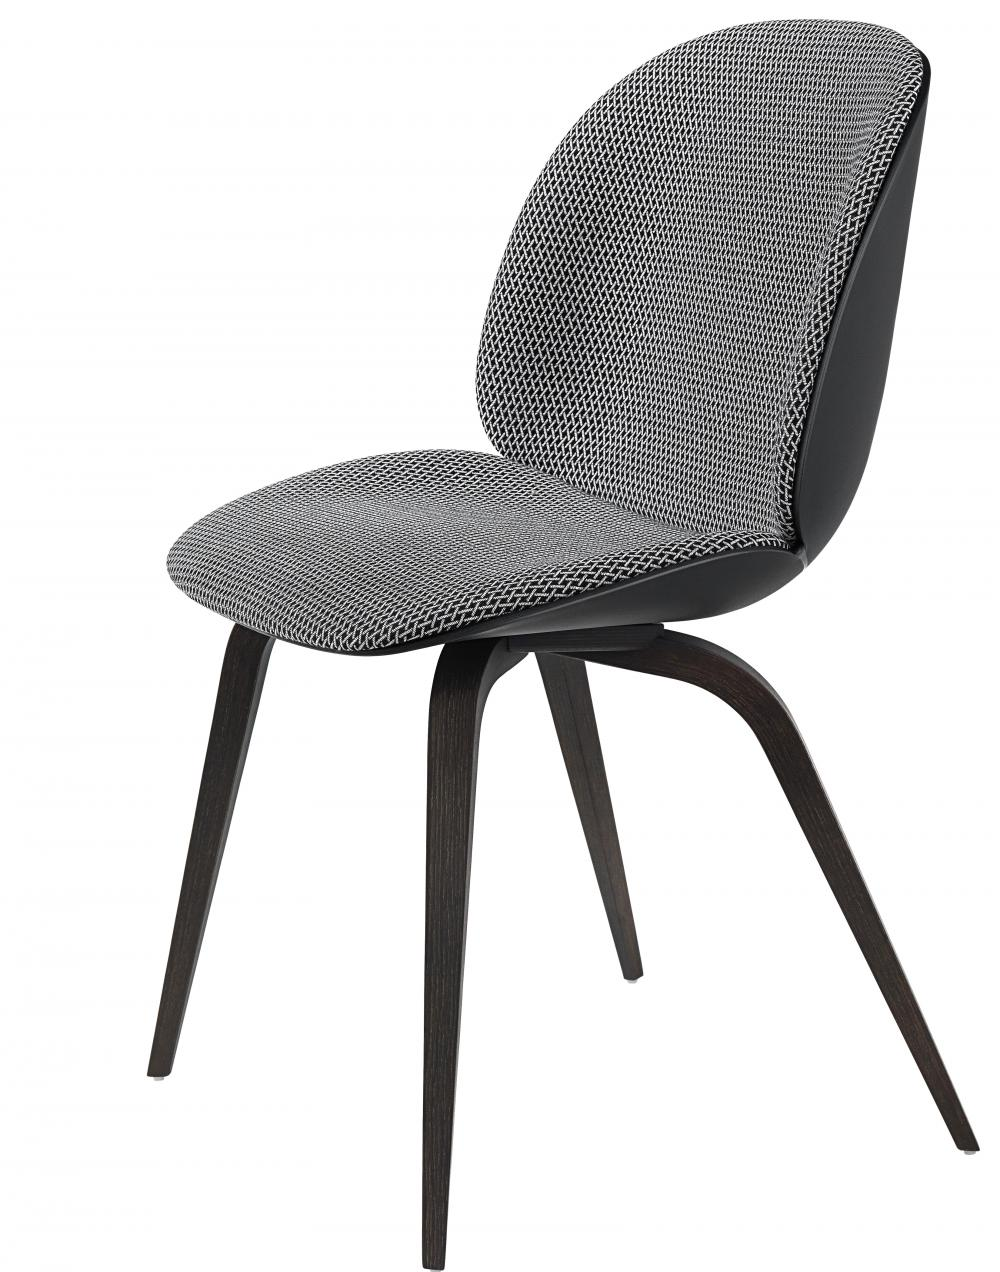 Beetle Dining Chair - Wood Base - Front / Fully Upholstered